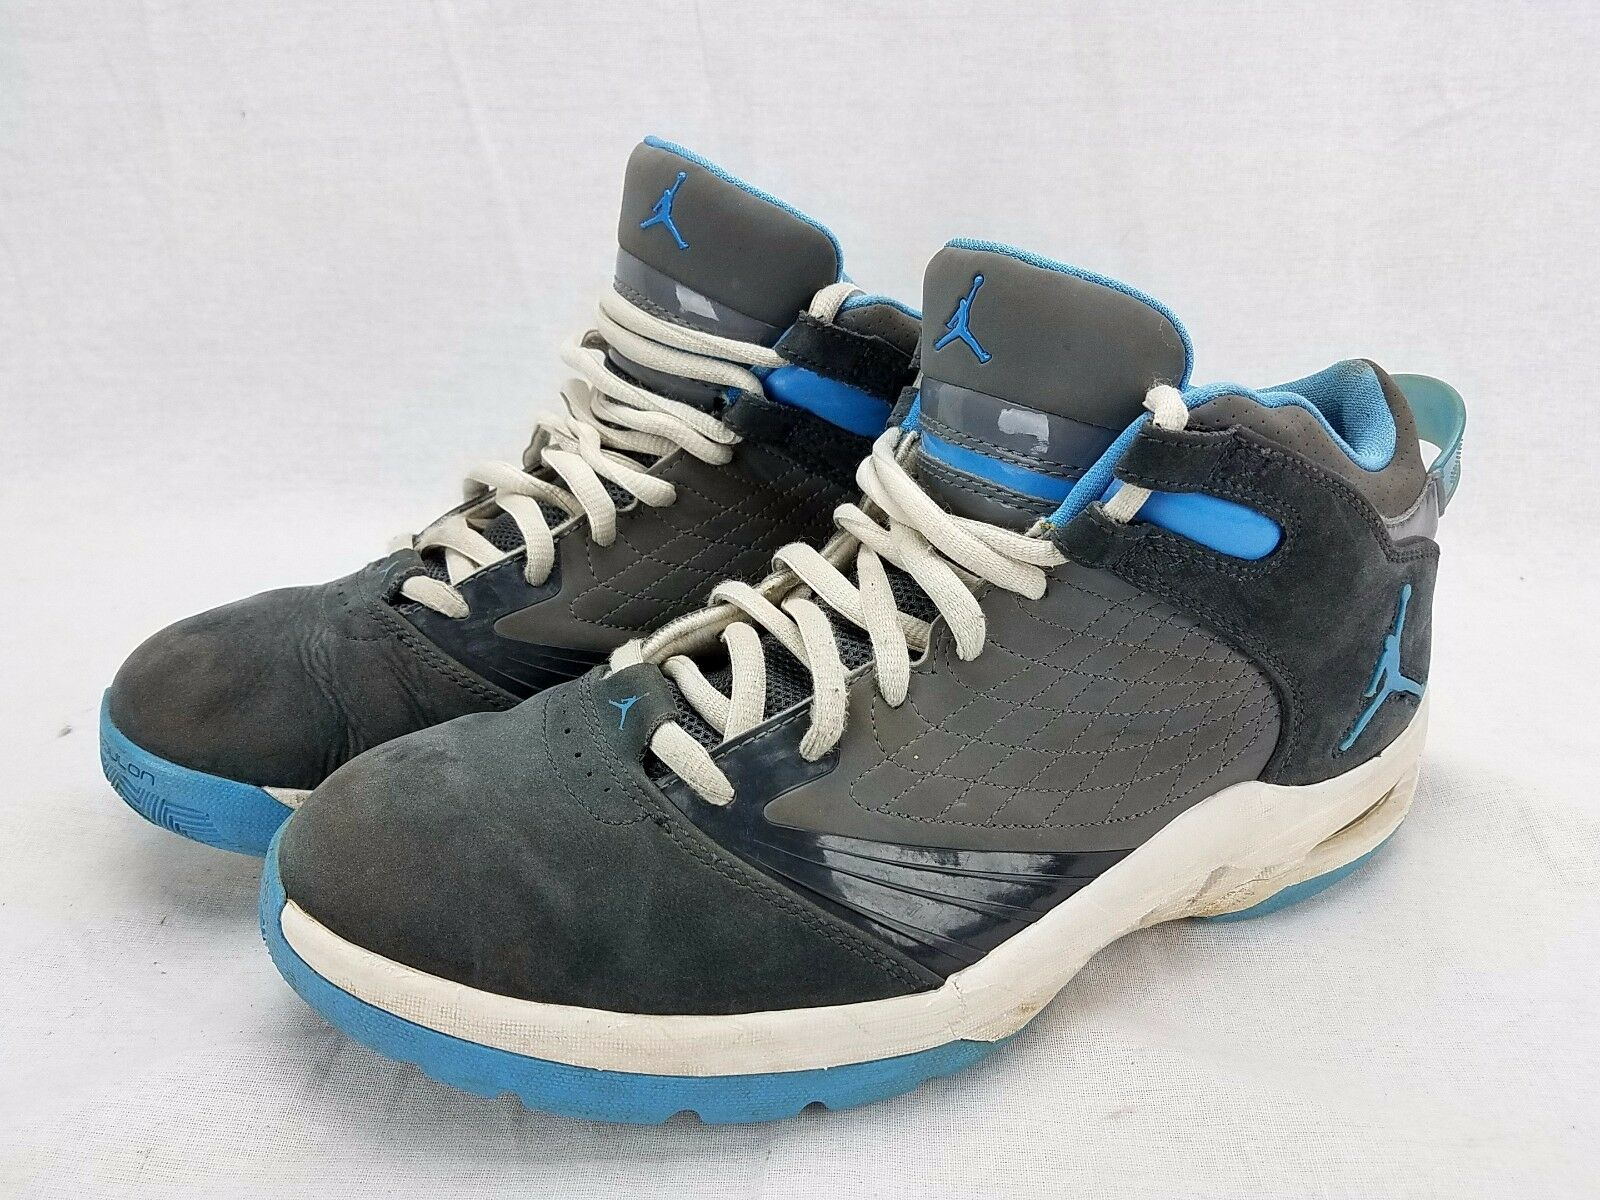 Nike Air Jordan New School Anthracite Univsersity Blue Cool Grey White 469955-00 The latest discount shoes for men and women